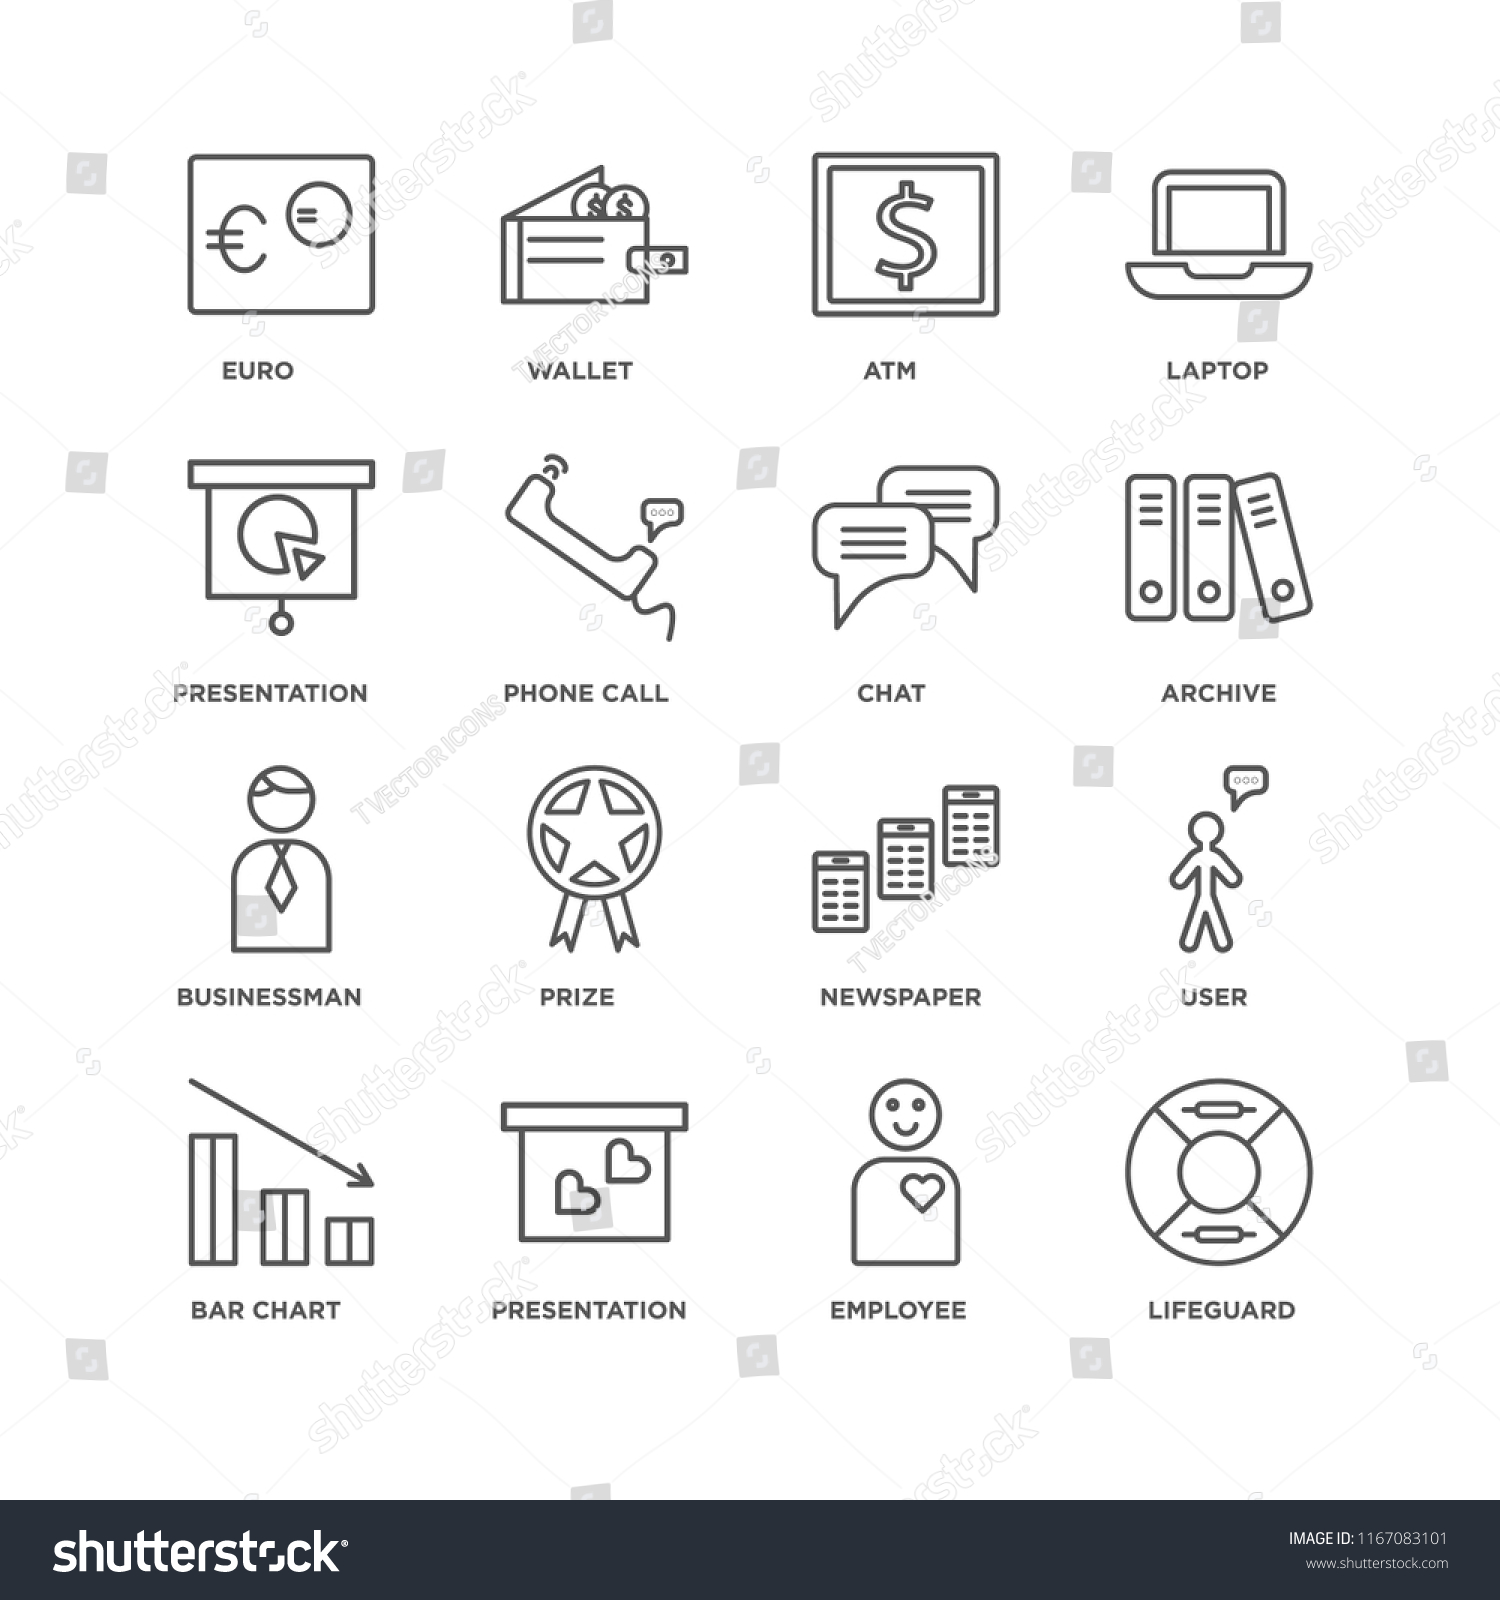 Set 16 Simple Line Icons Such Stock Vector Royalty Free 1167083101 Battery Cell Diagram Editable Powerpoint Template Of As Lifeguard Employee Presentation Bar Chart